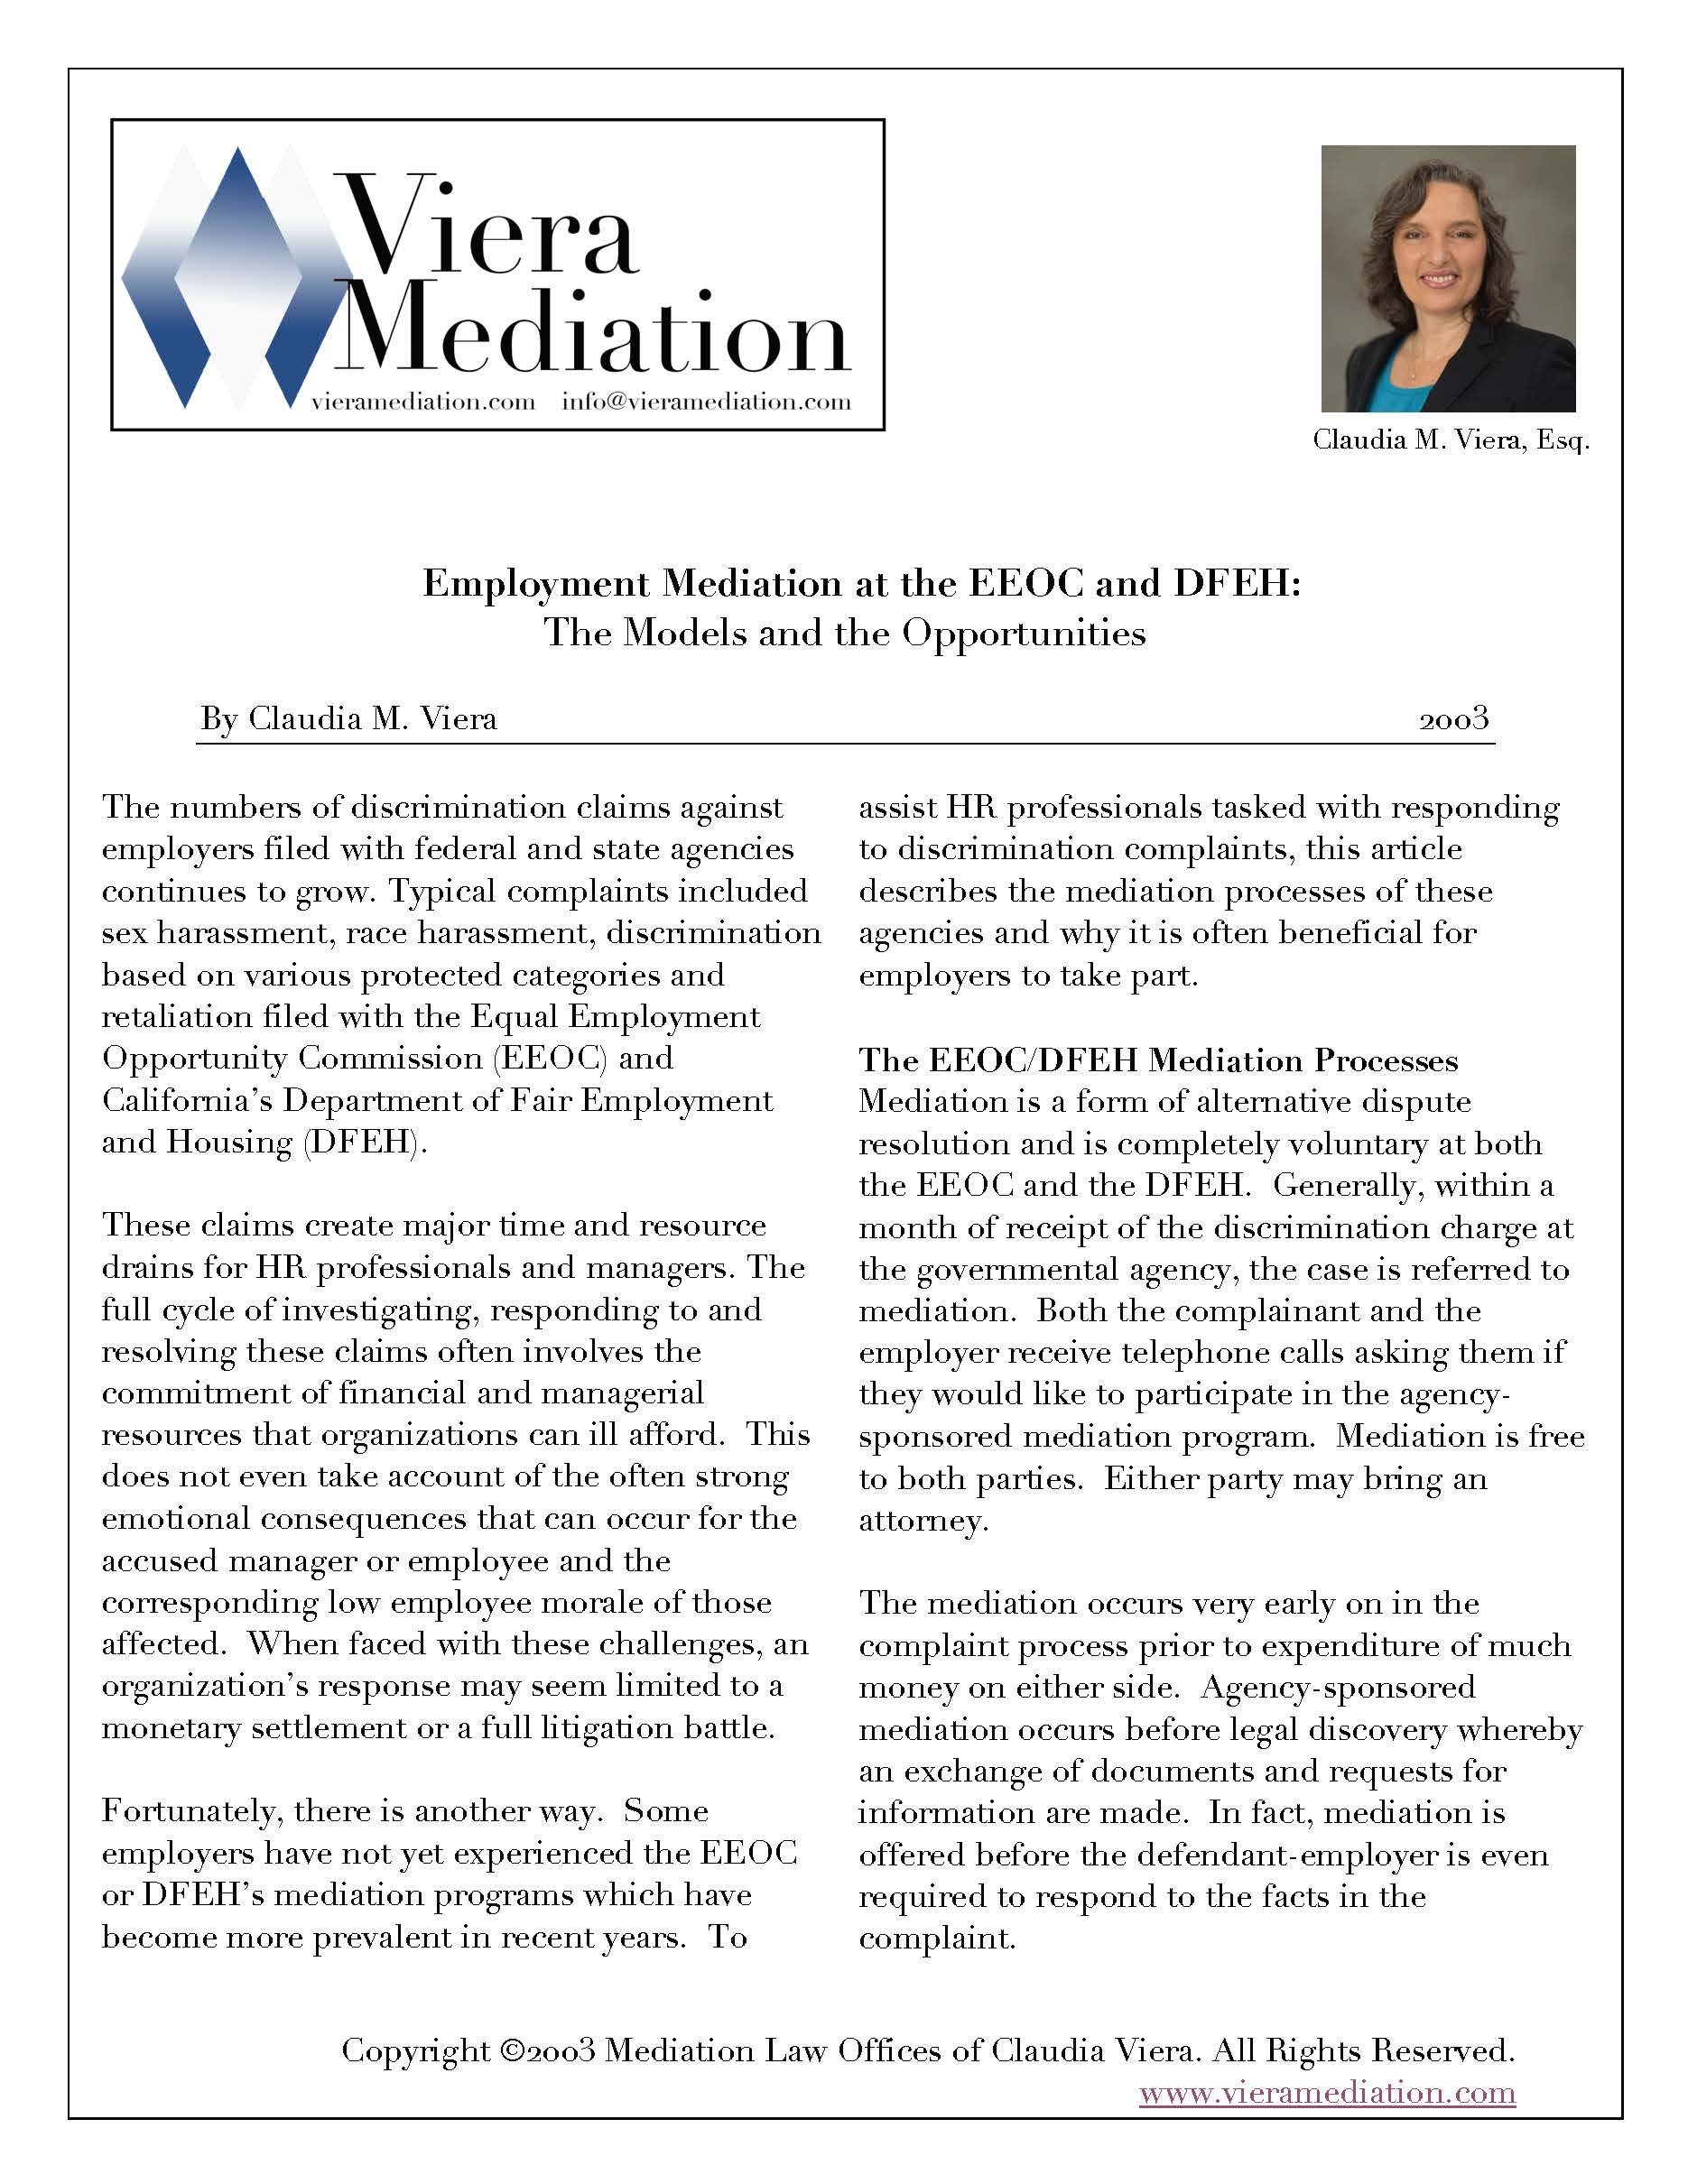 2003Employment Mediation at the EEOC and DFEH_Page_1.jpg